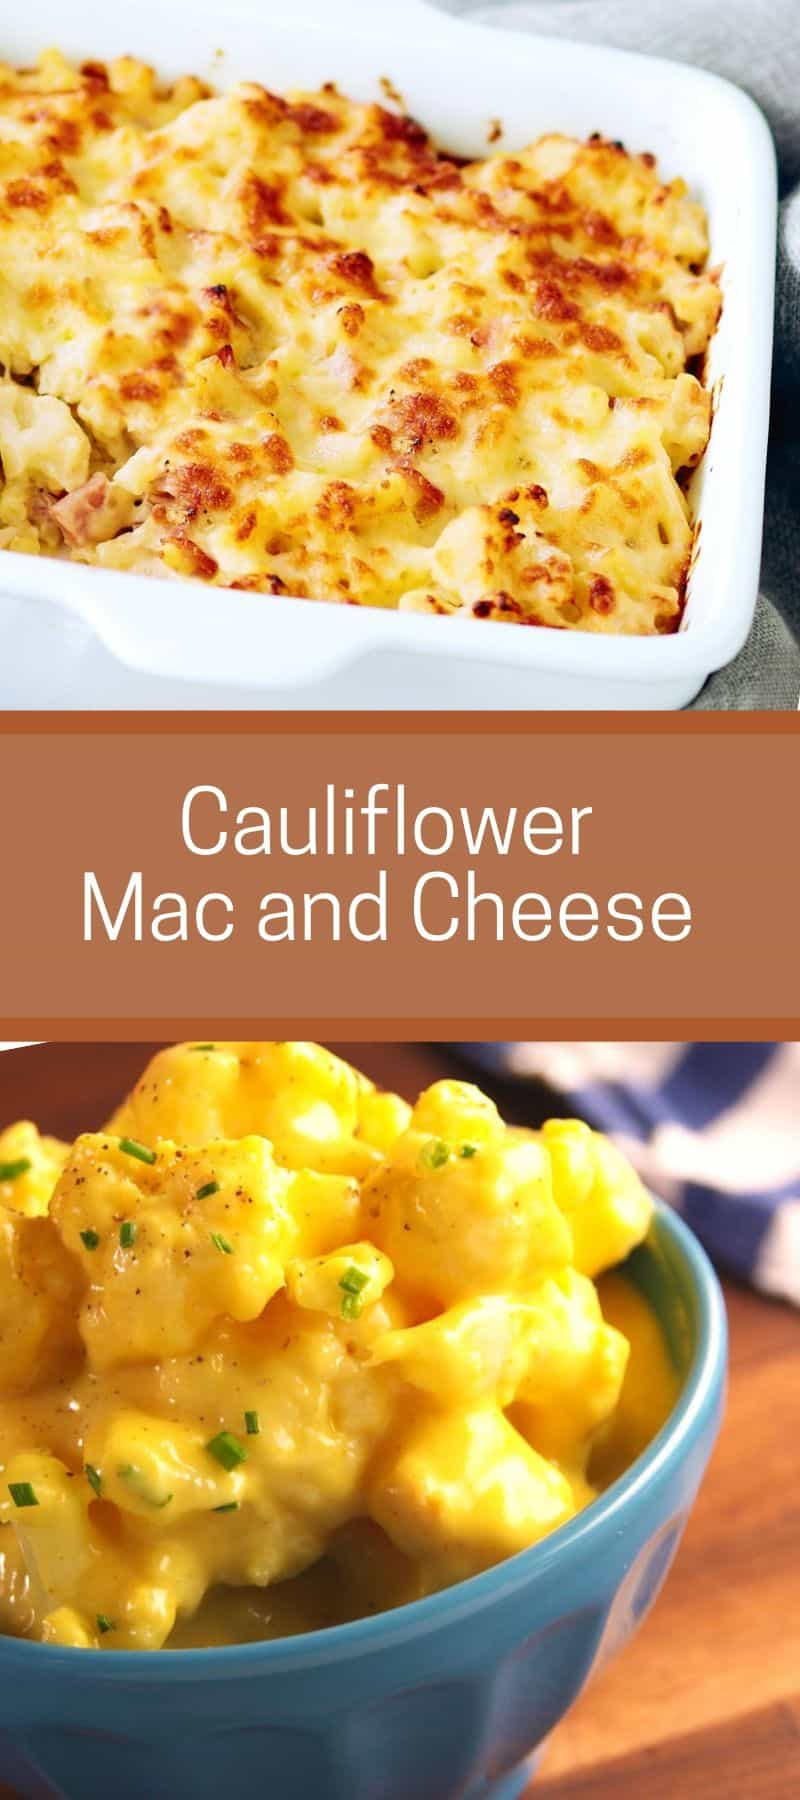 Cauliflower Mac and Cheese Recipe